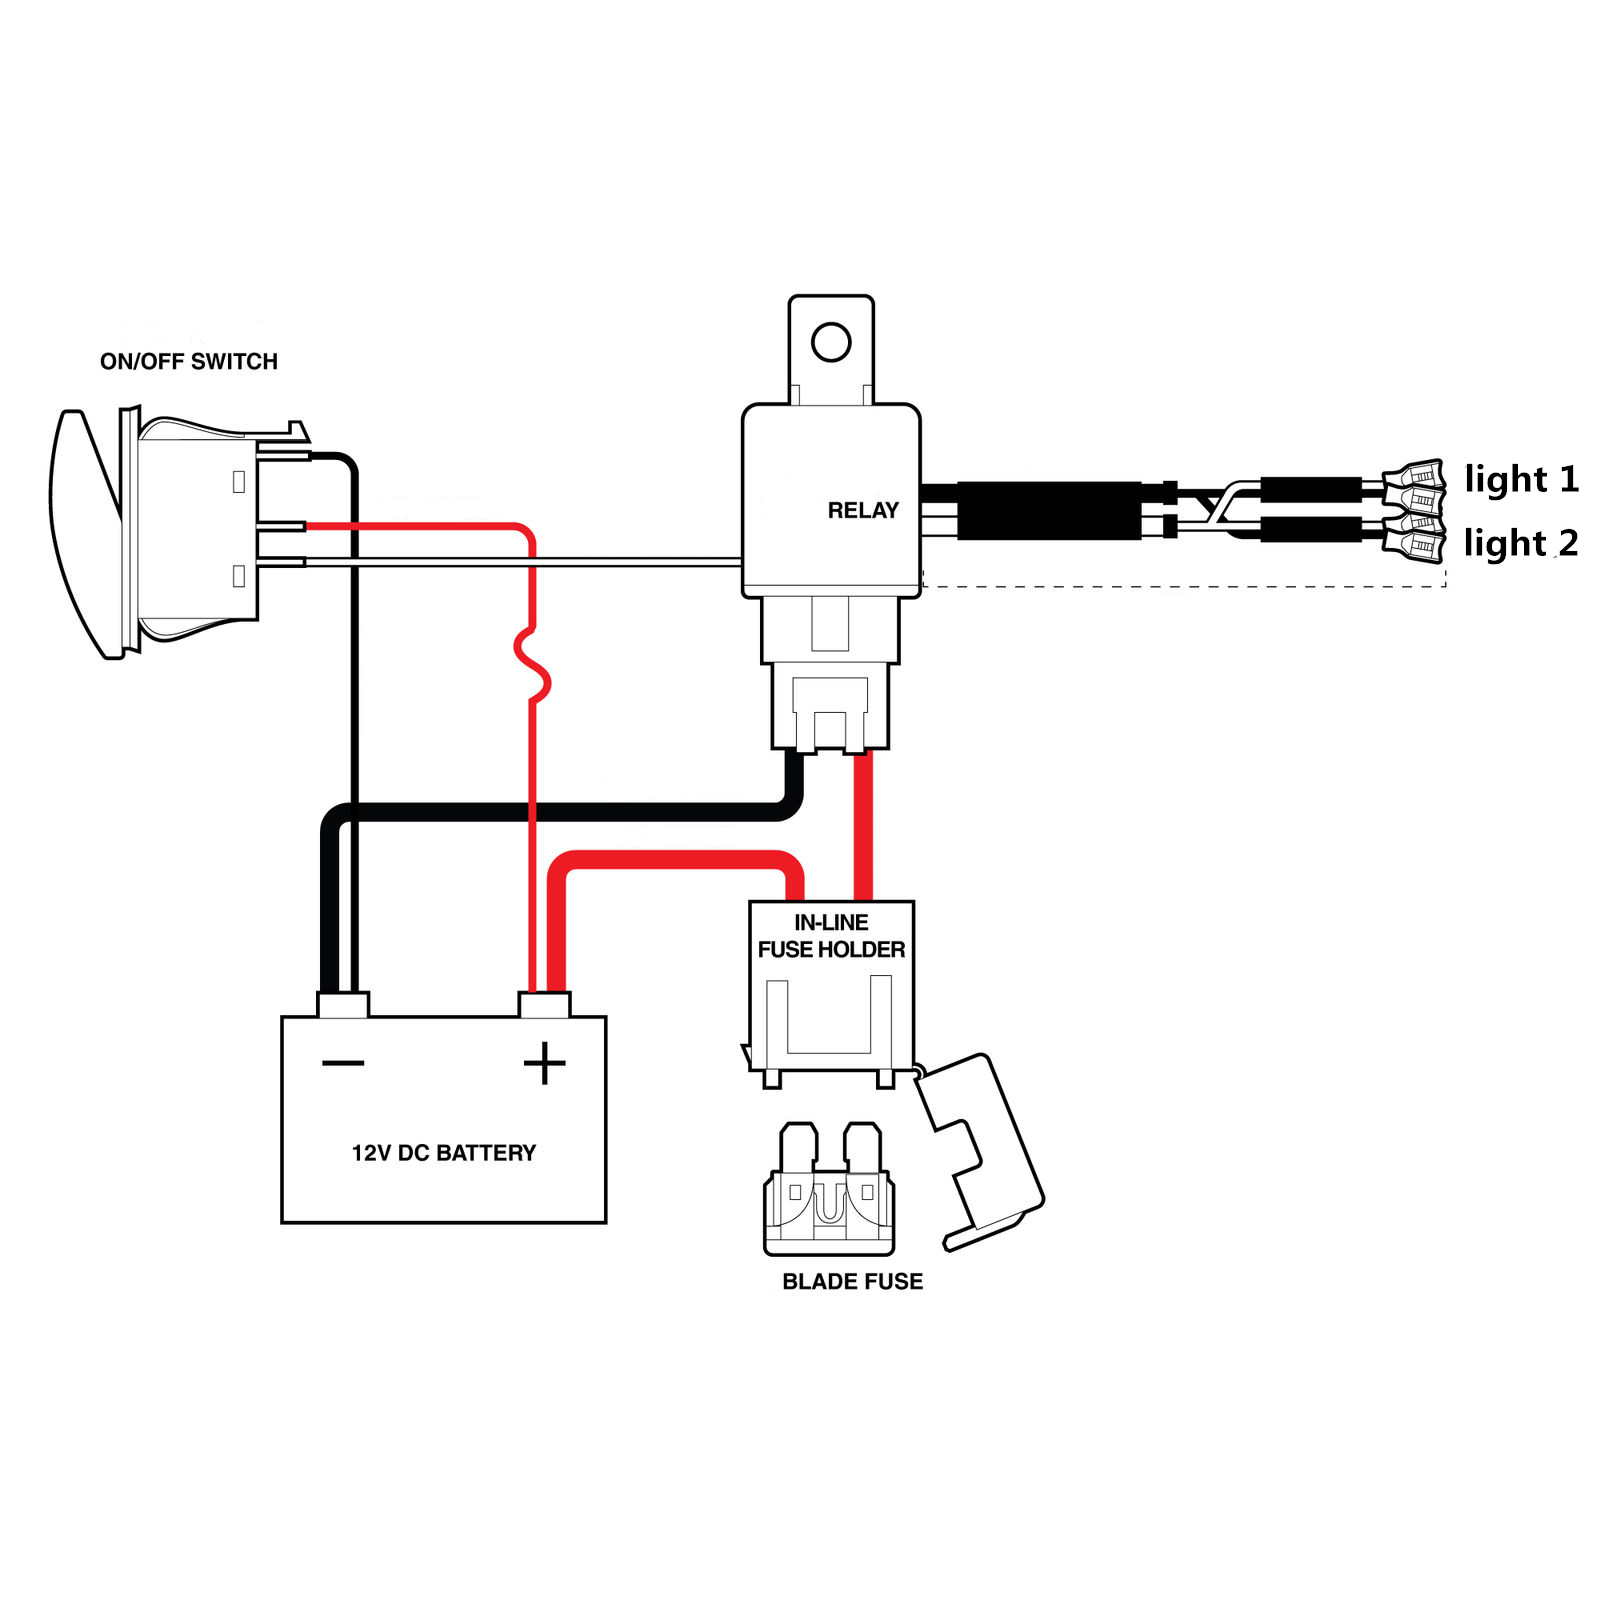 hight resolution of 1 wiring harness 100 brand new wattage max 300w colour black relay 12v 40a fuse 30a